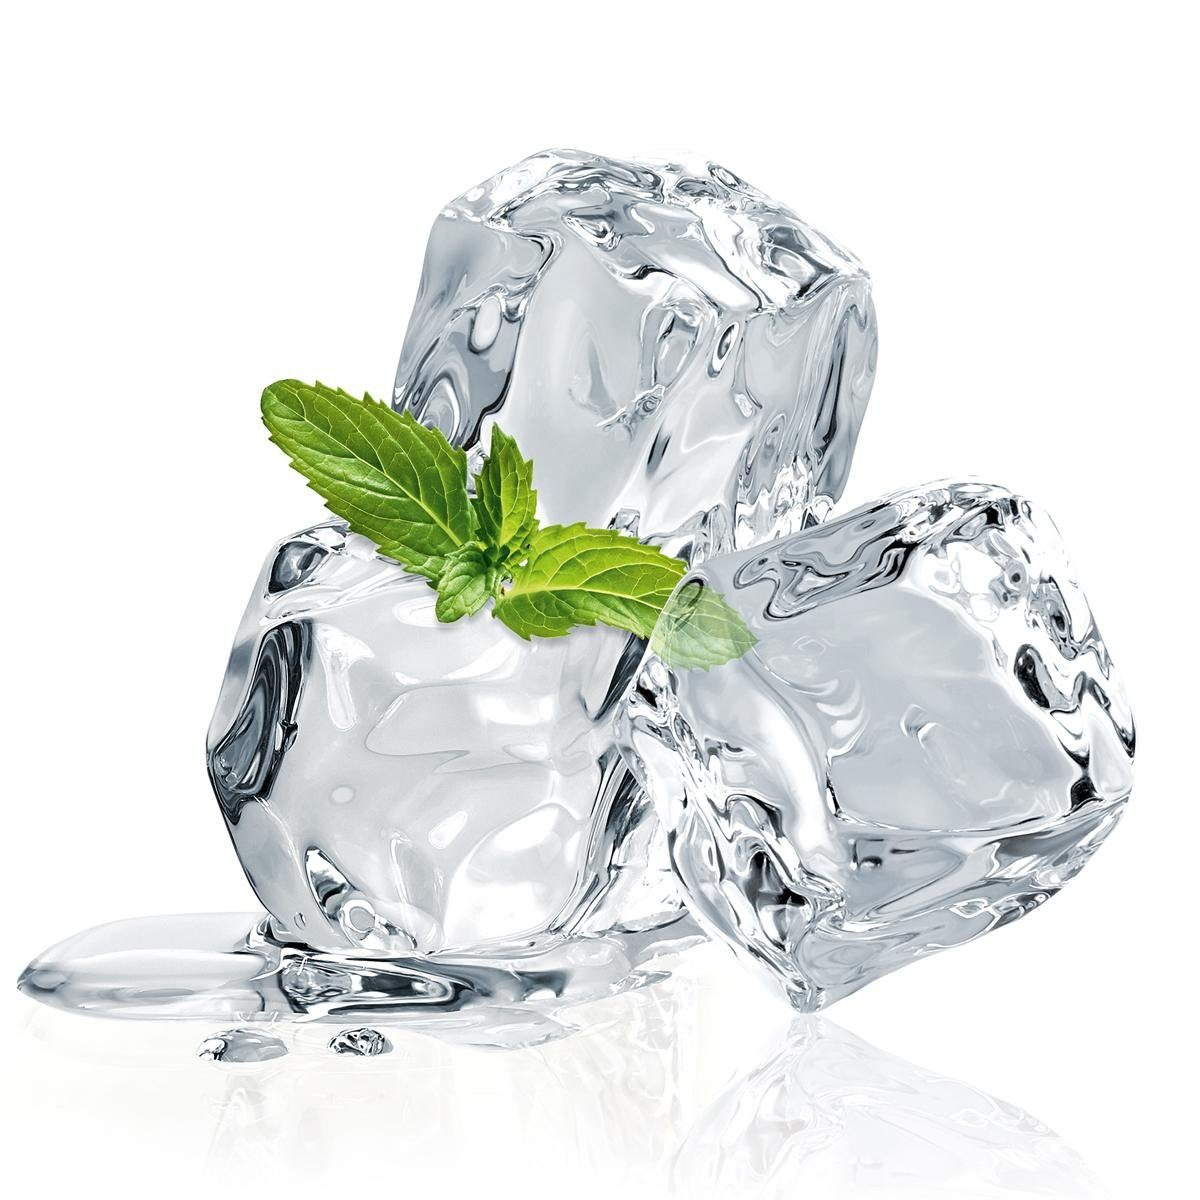 Eurographics Glasbild »Three Mint Ice Cubes«, 20/20cm